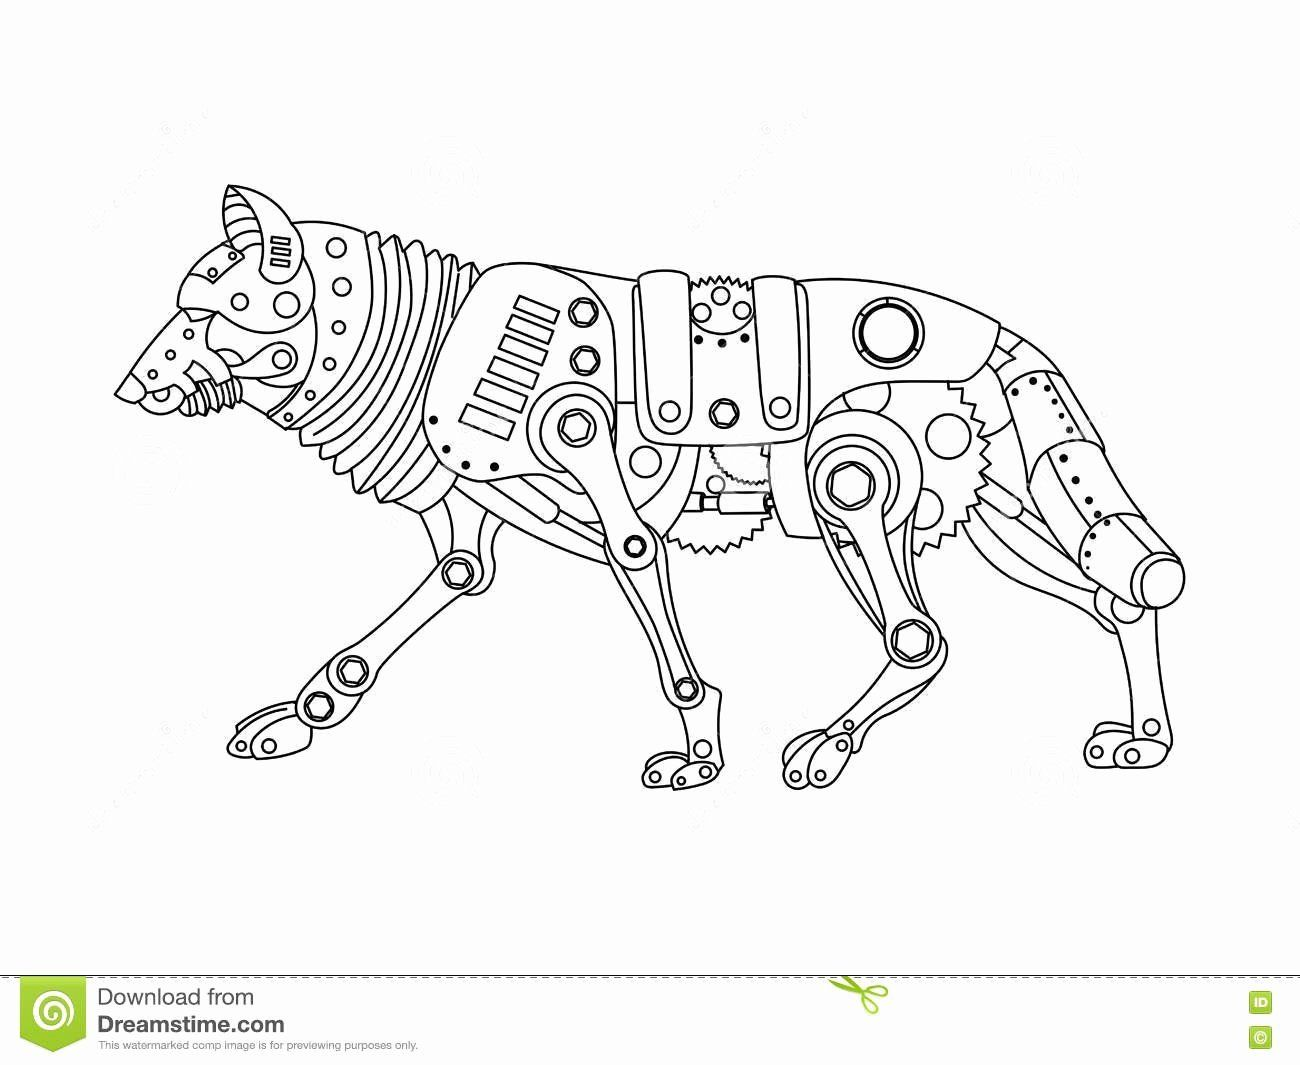 Twisted Wolf Coloring Pages on a budget